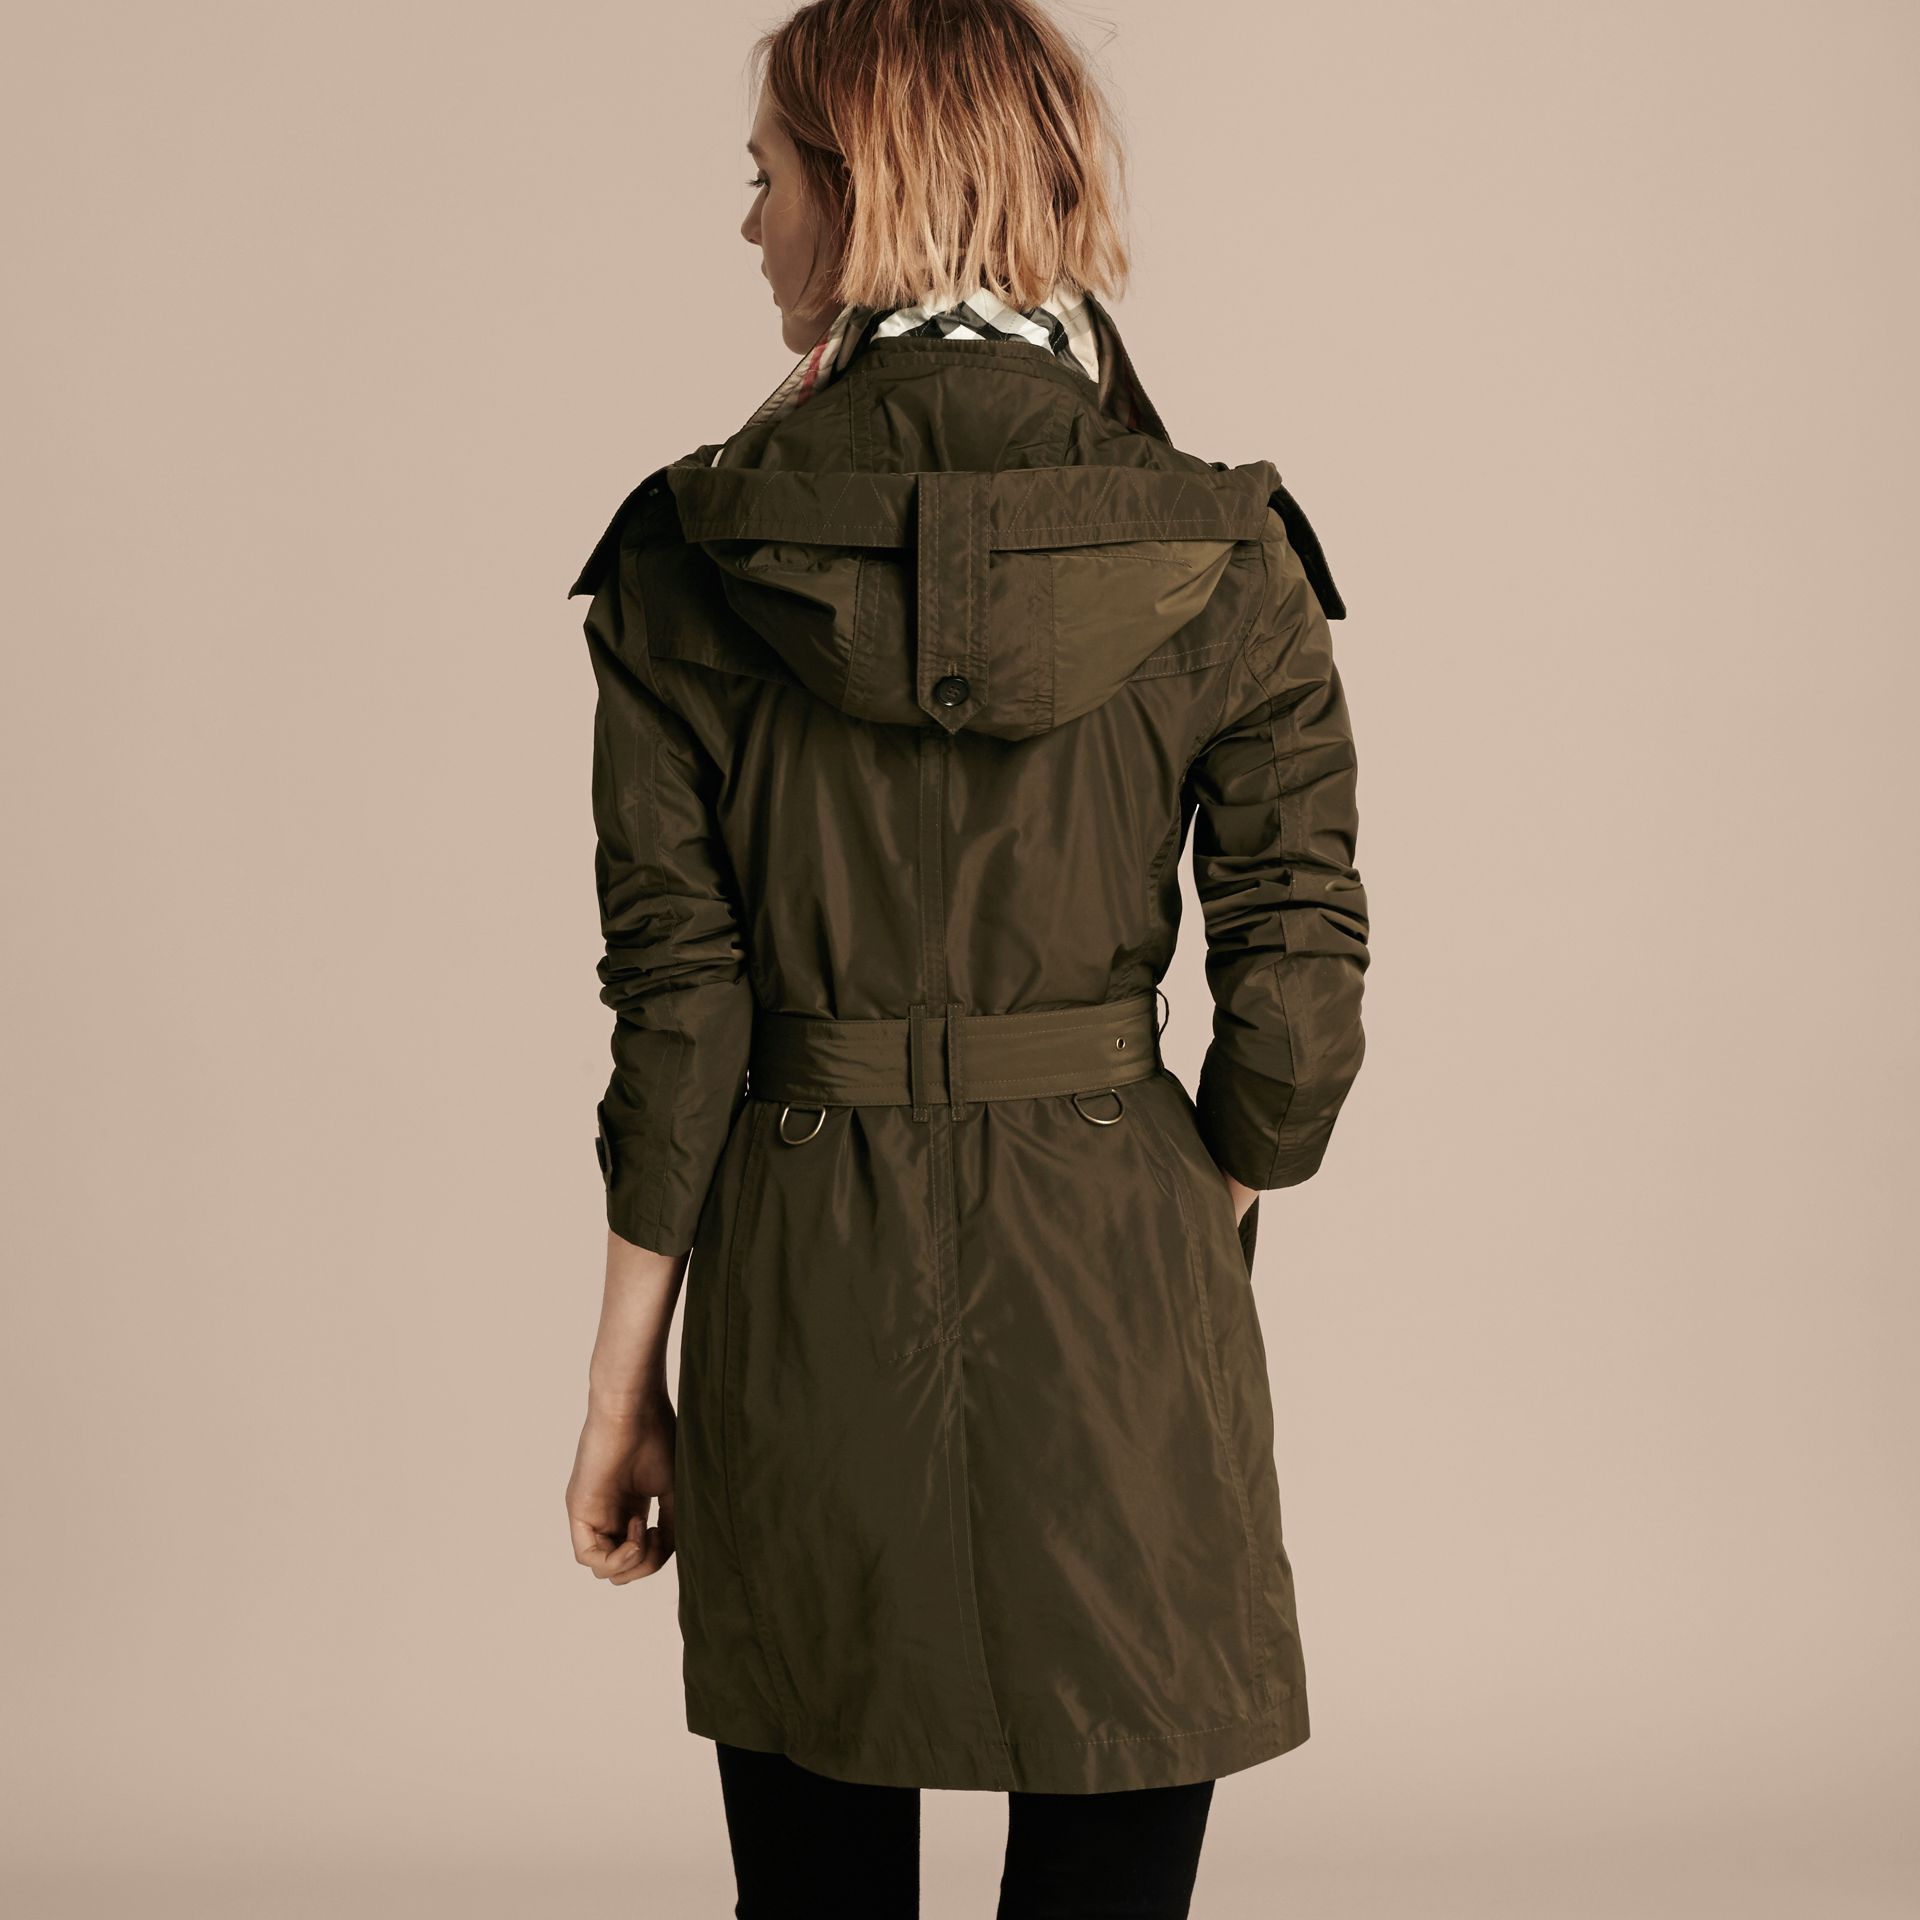 Taffeta Trench Coat with Detachable Hood in Dark Olive - Women | Burberry - gallery image 2